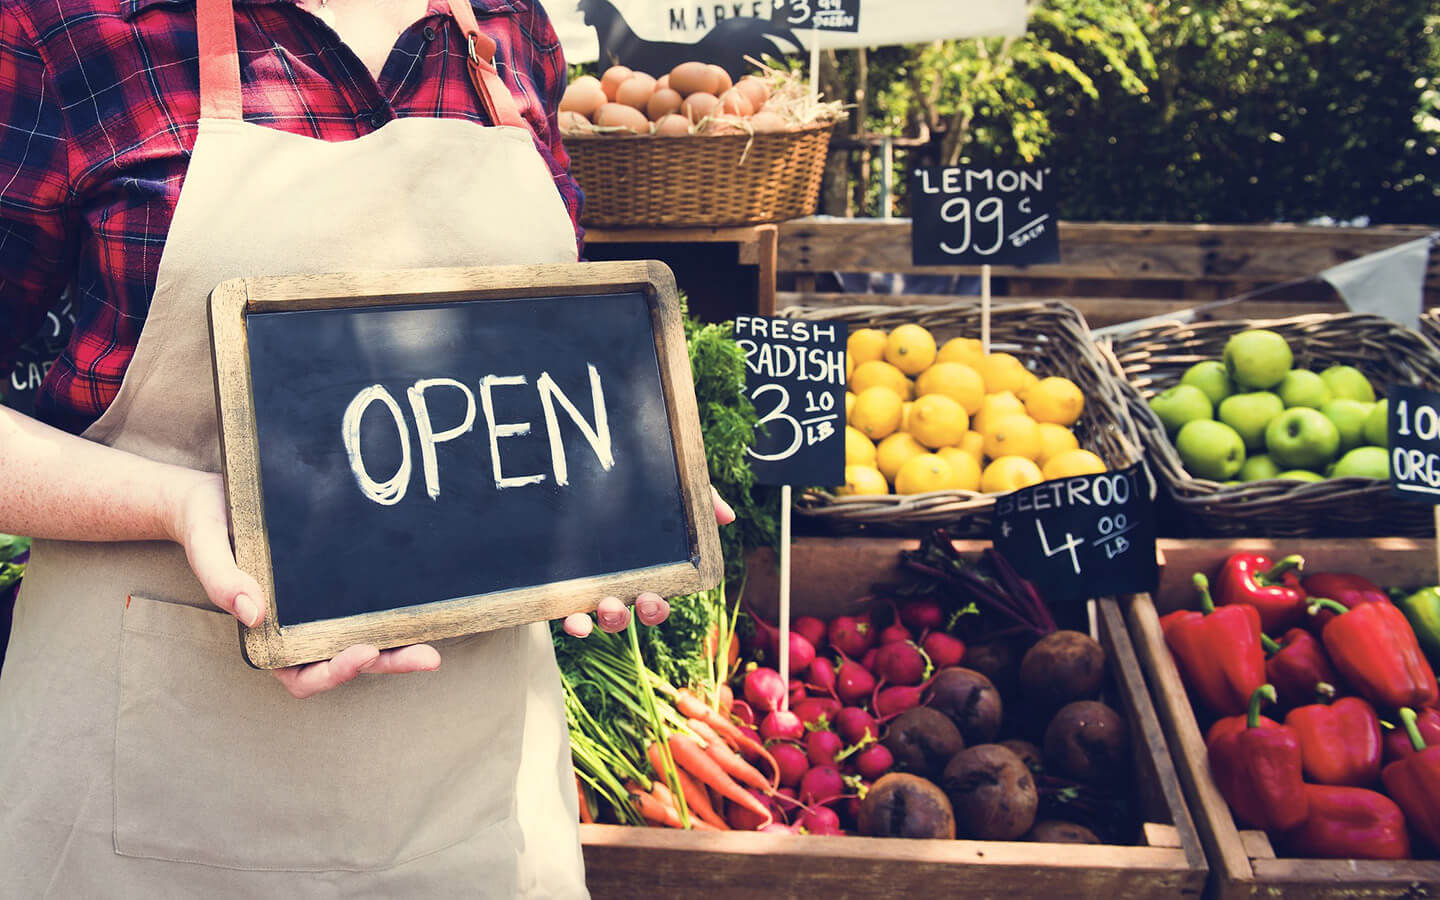 Person holding an 'Open' sign at a Farmers market in Lancaster County